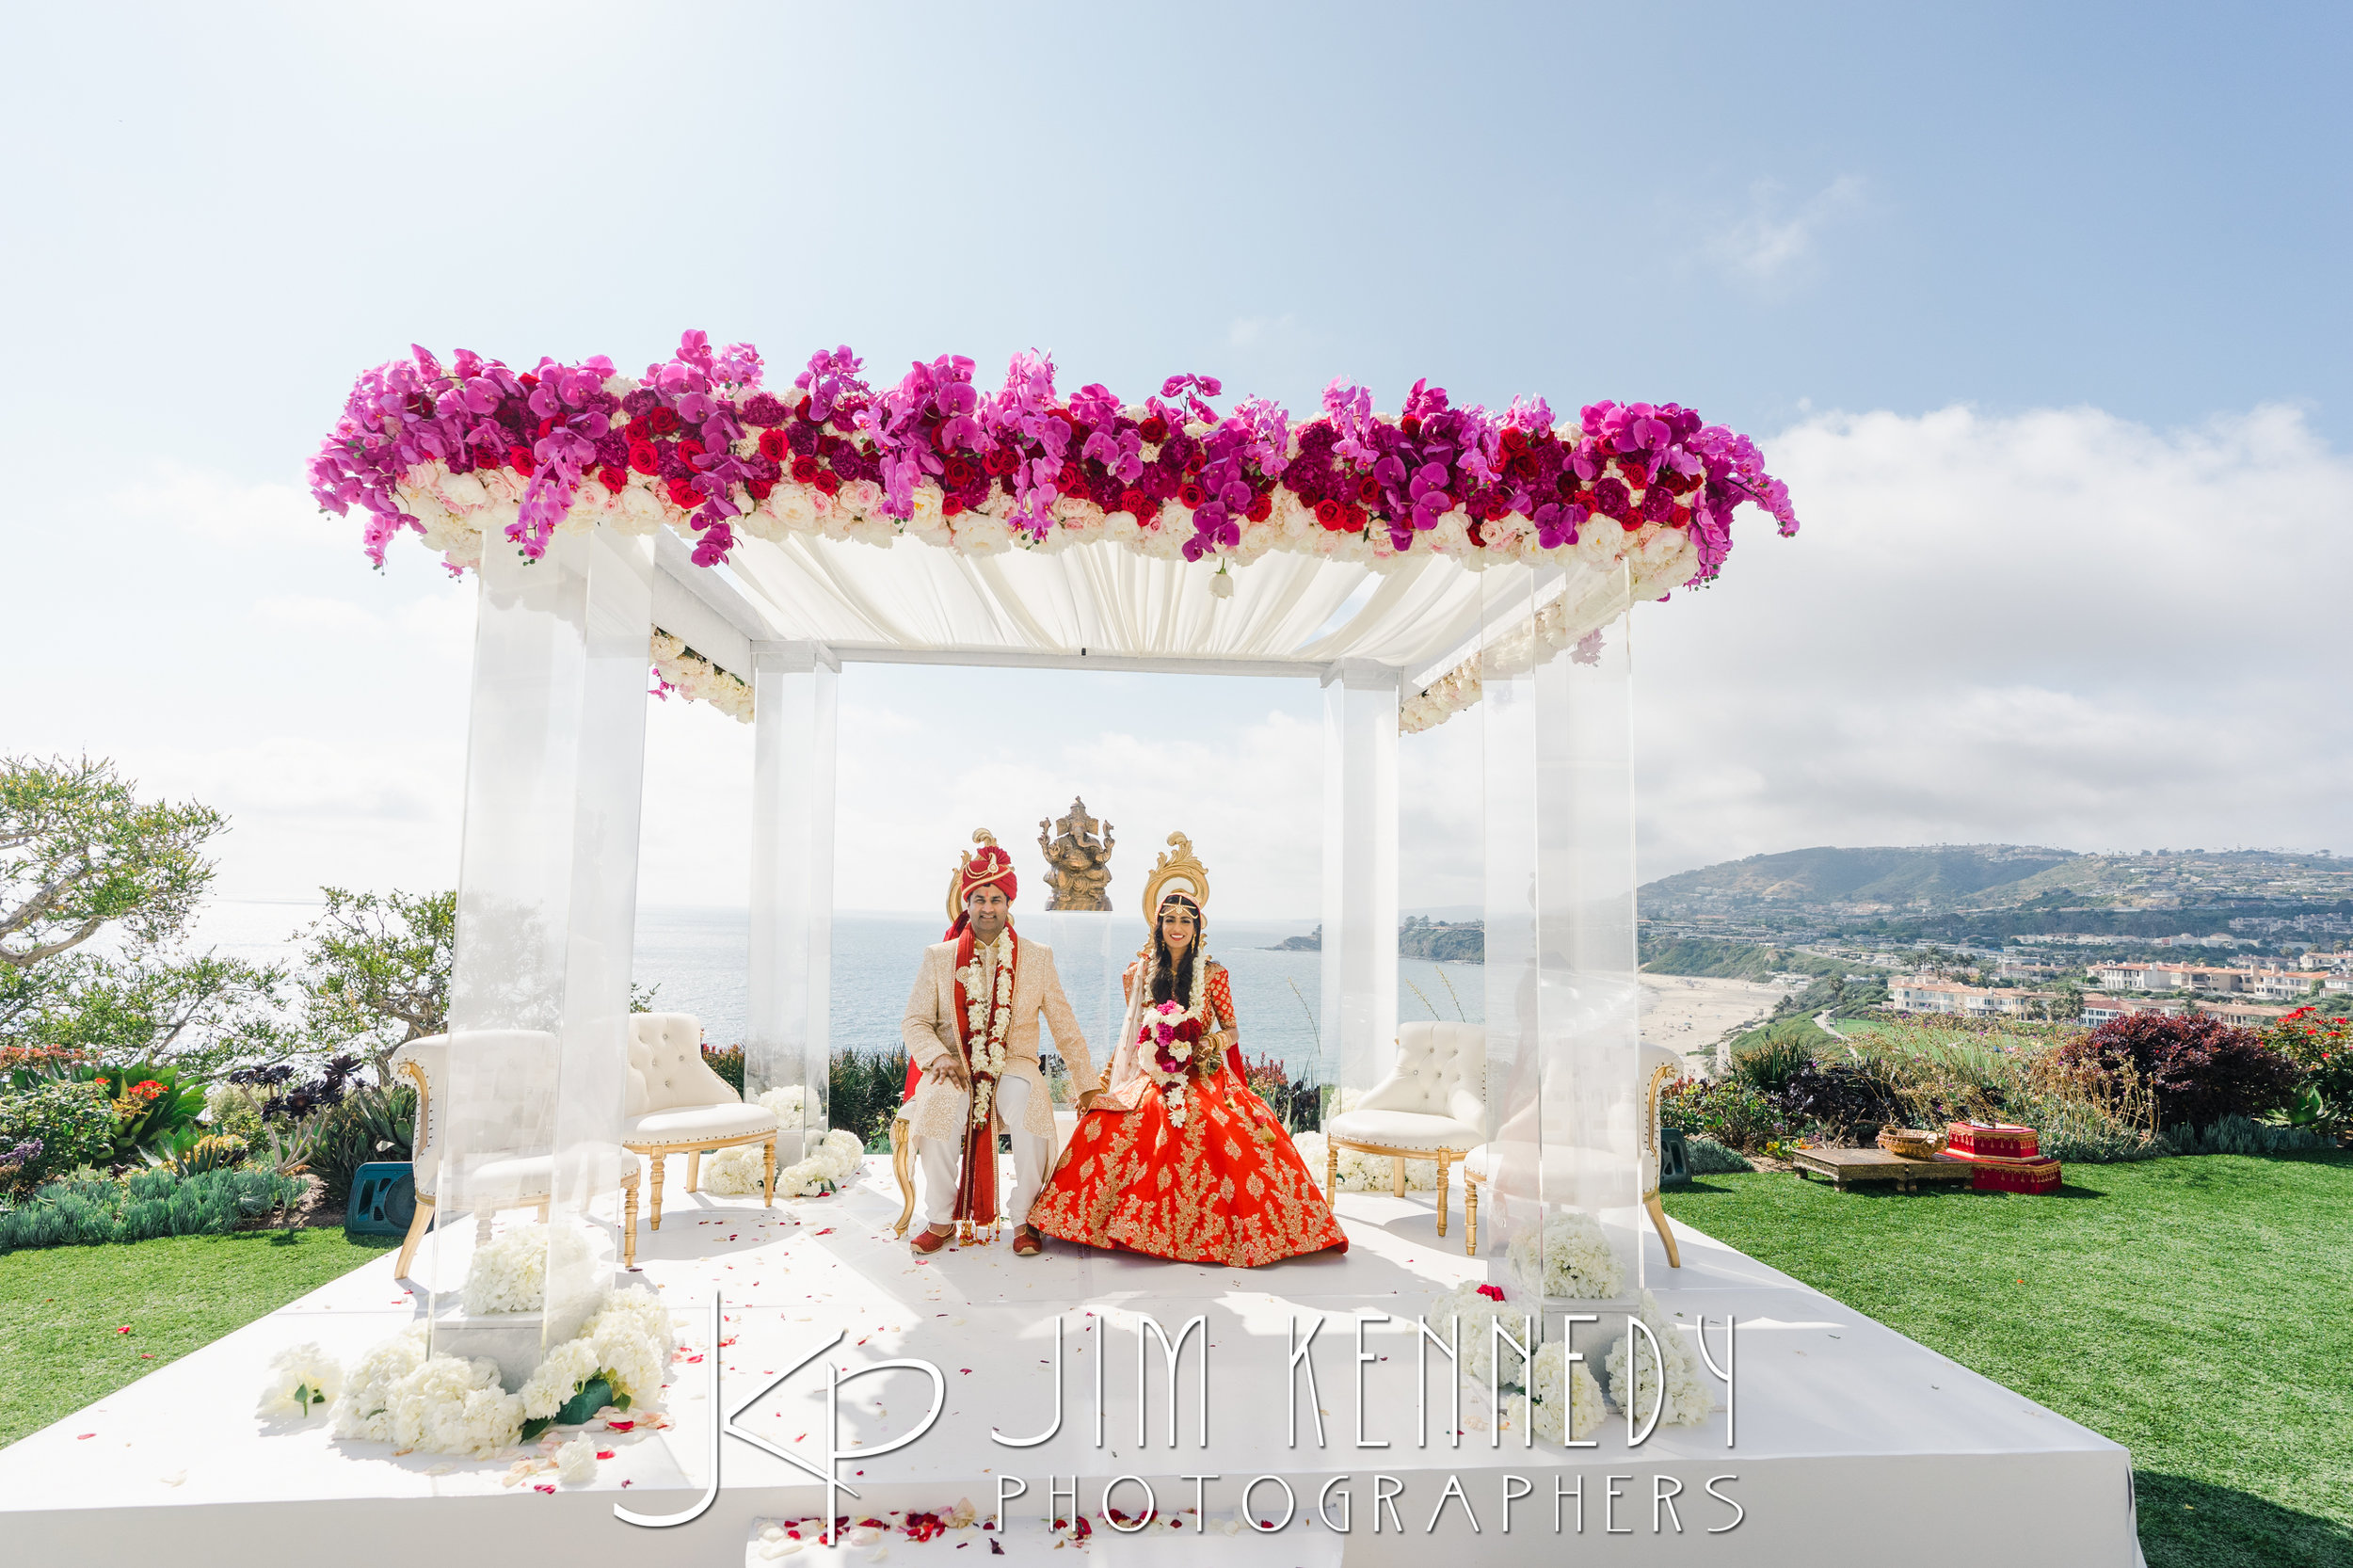 ritz-carlton-wedding-janaki-sameer_0191.JPG